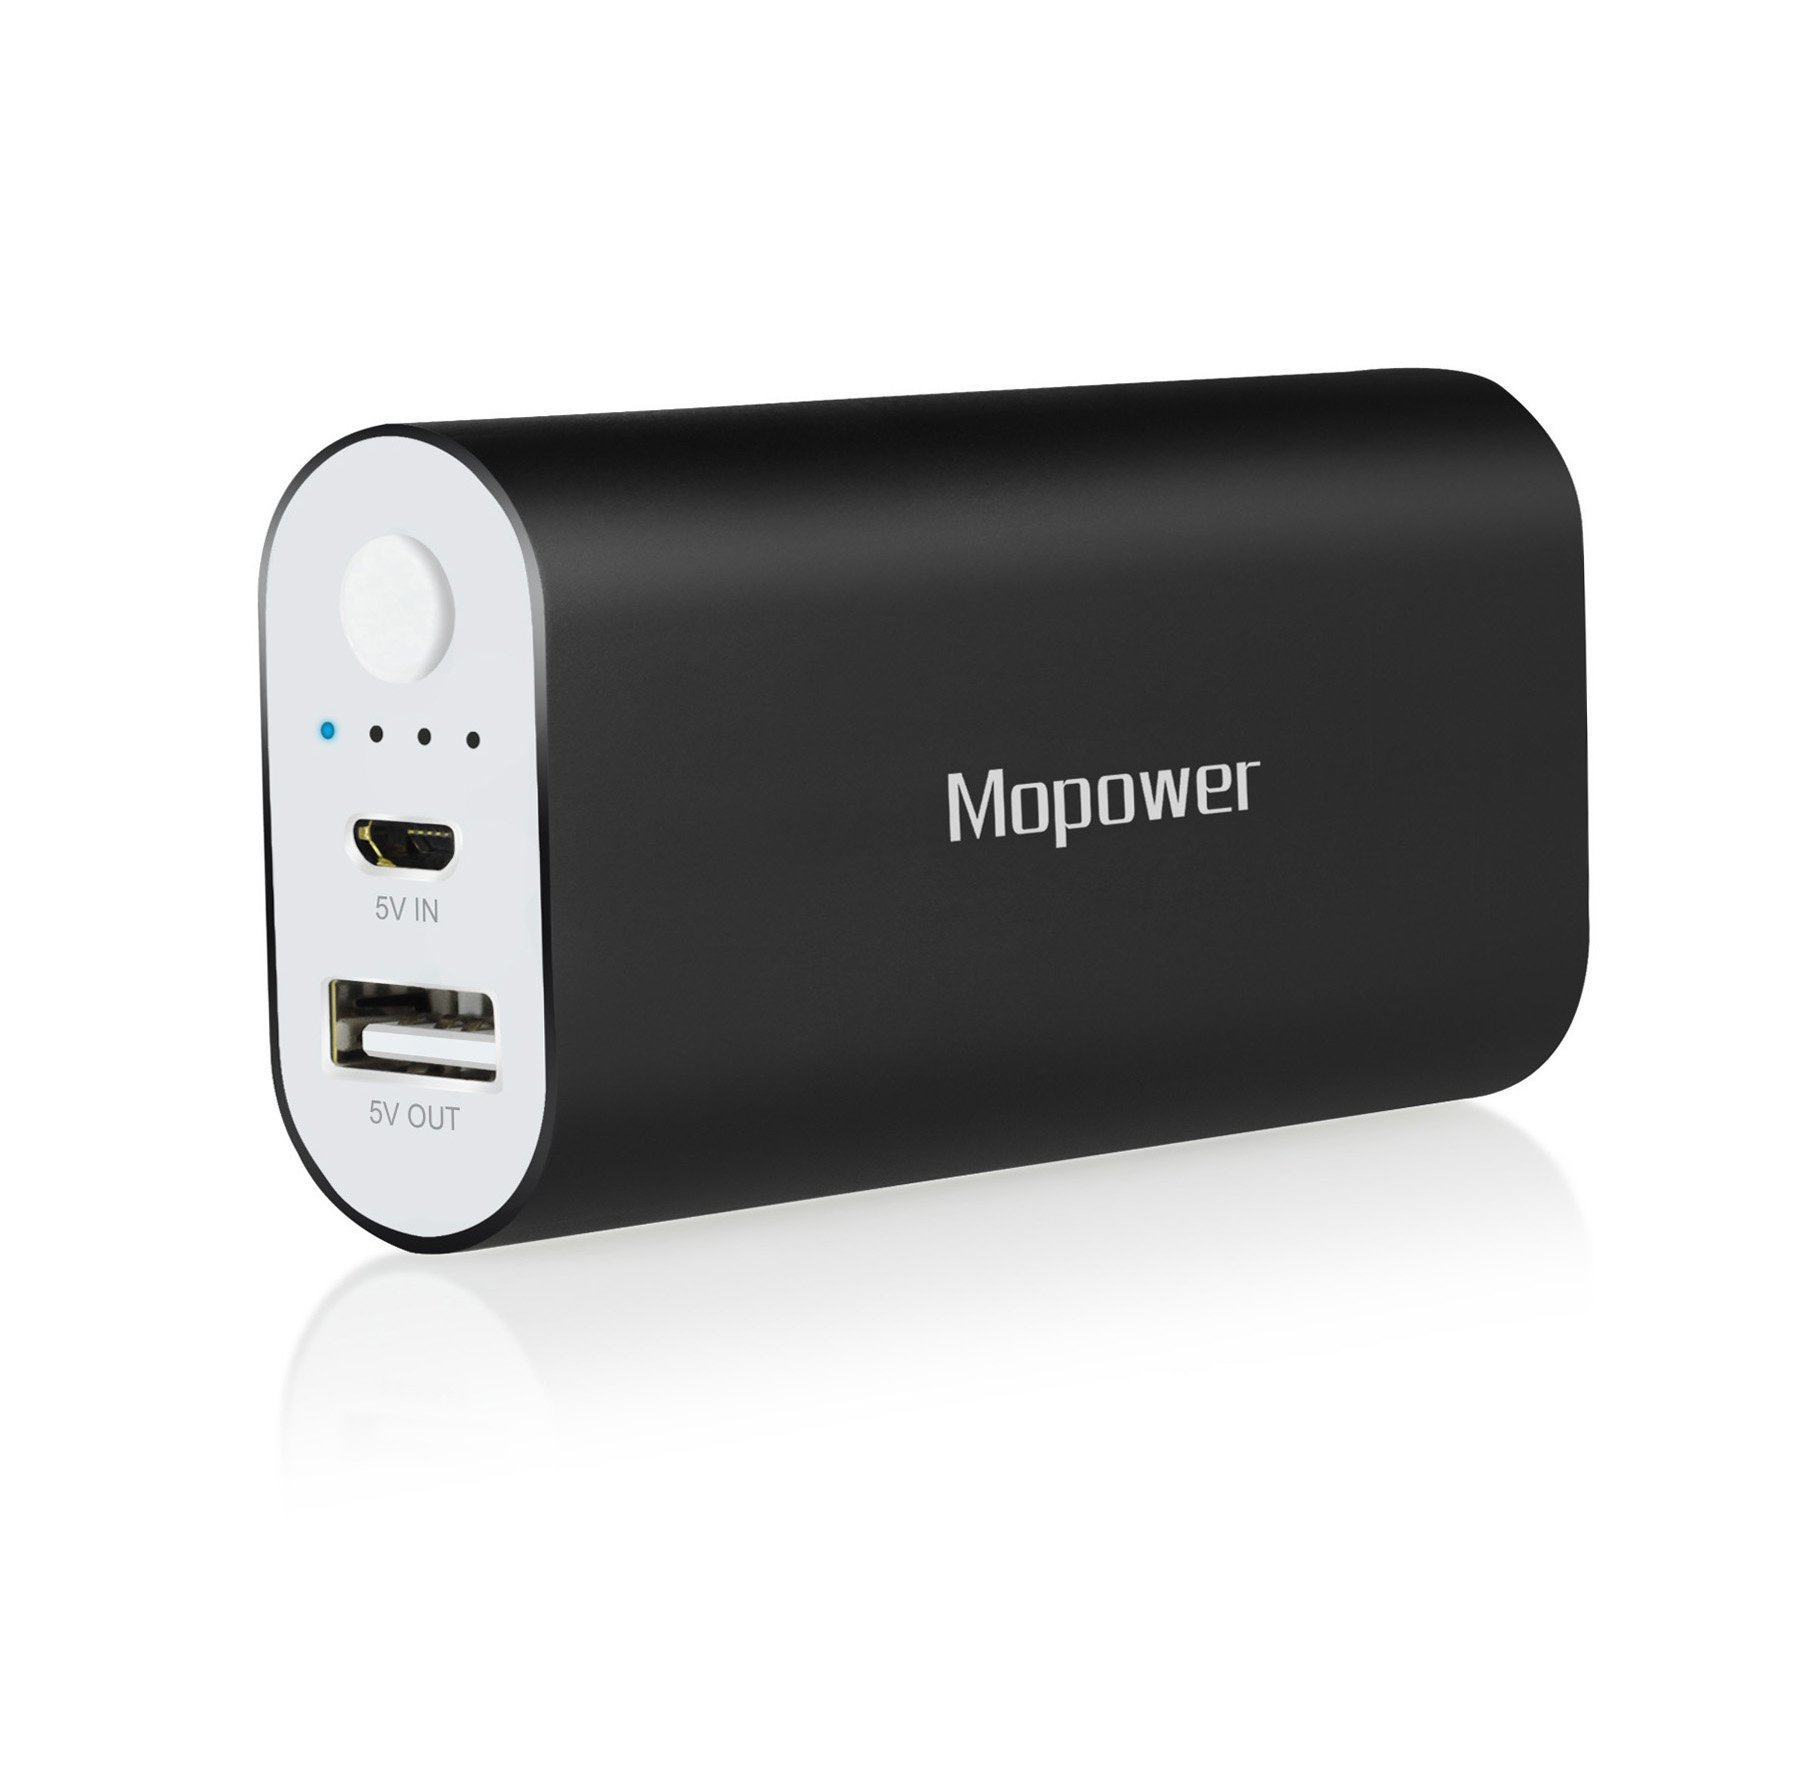 Portable Charger, Mopower 6000mAh Pocket-Sized Power Bank Aluminum Metal External Backup Battery Pack for iPhone 6 6S, 6S Plus, iPad ,Galaxy S6, Note 3, iPod,HTC,Sony,LG, Mobile Devices (Black)